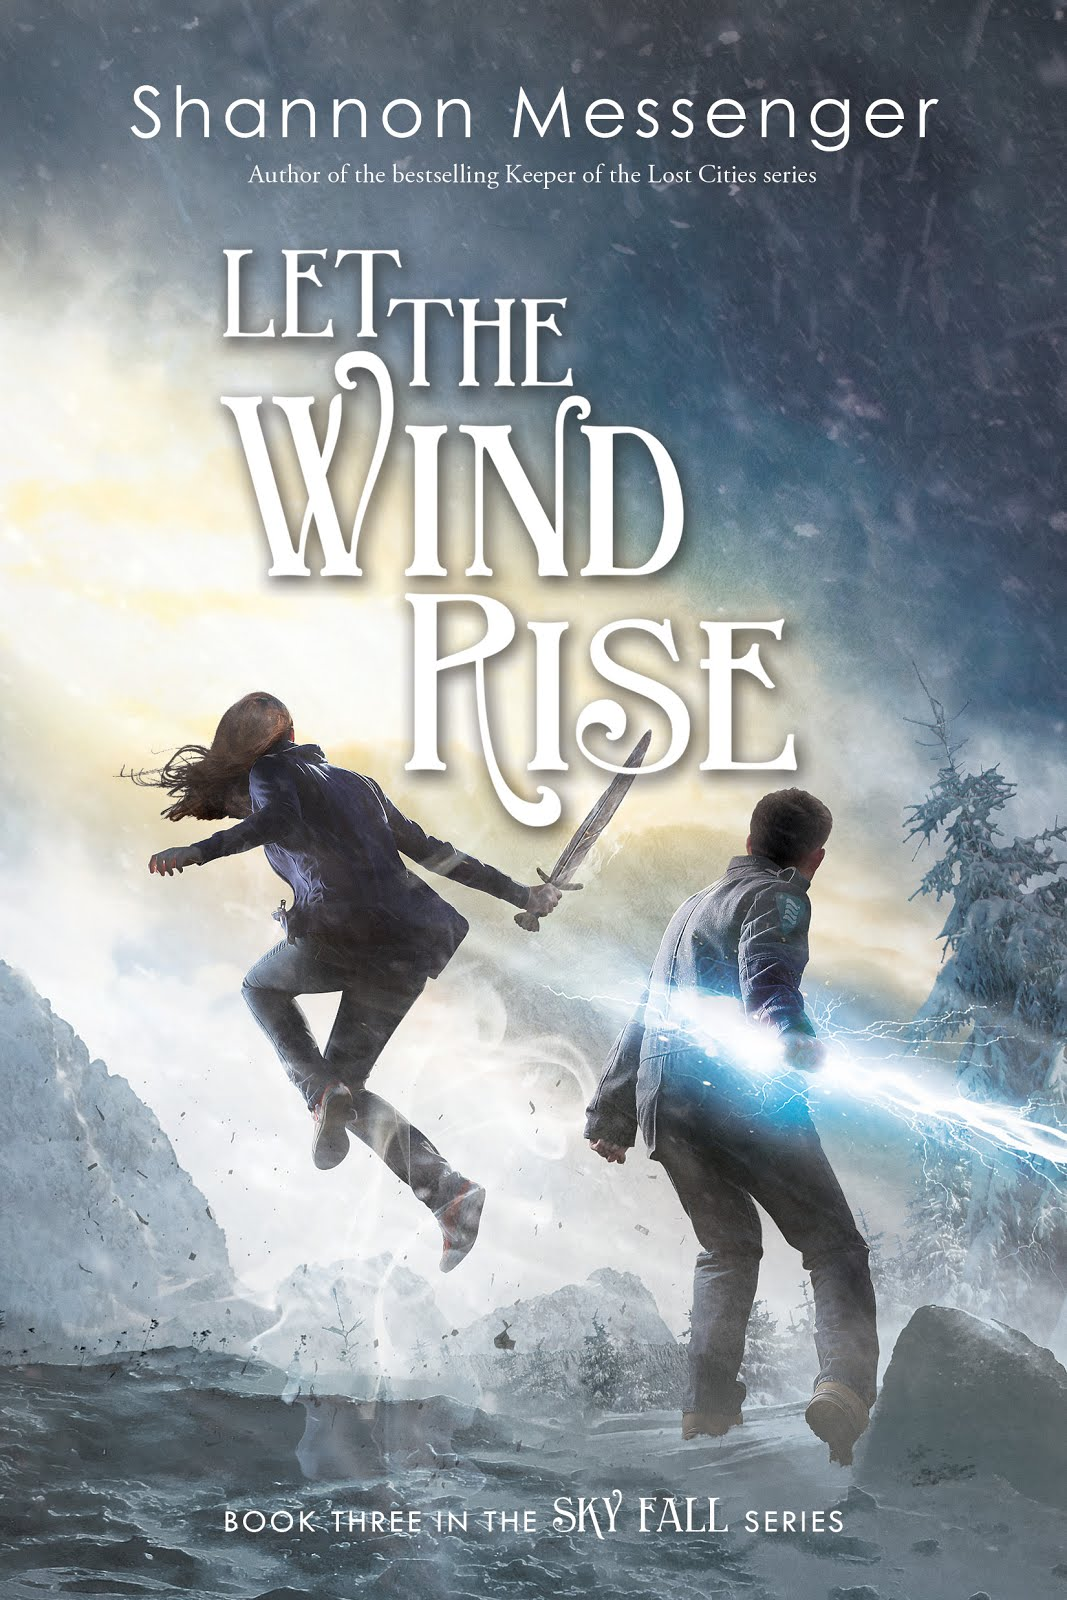 LET THE WIND RISE (Sky Fall Book #3)